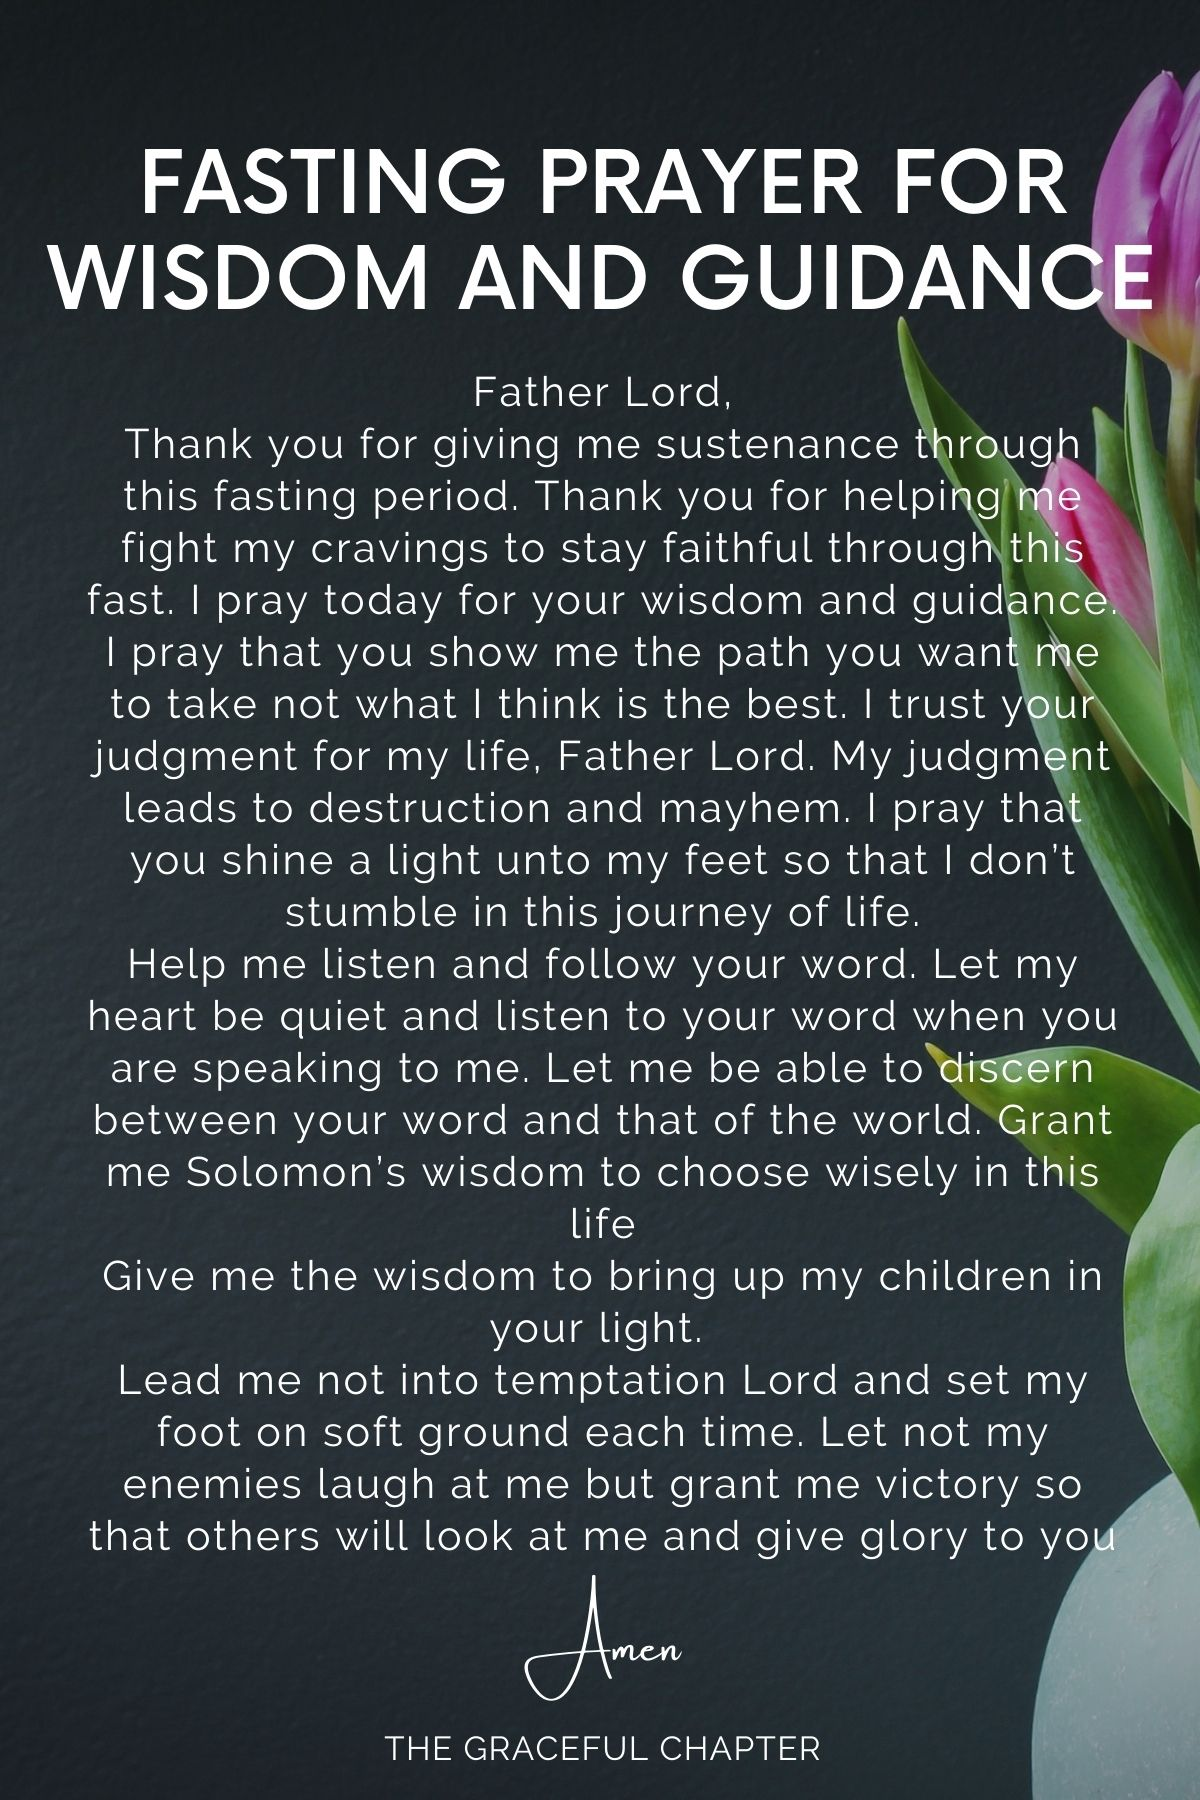 Fasting Prayer for wisdom and guidance